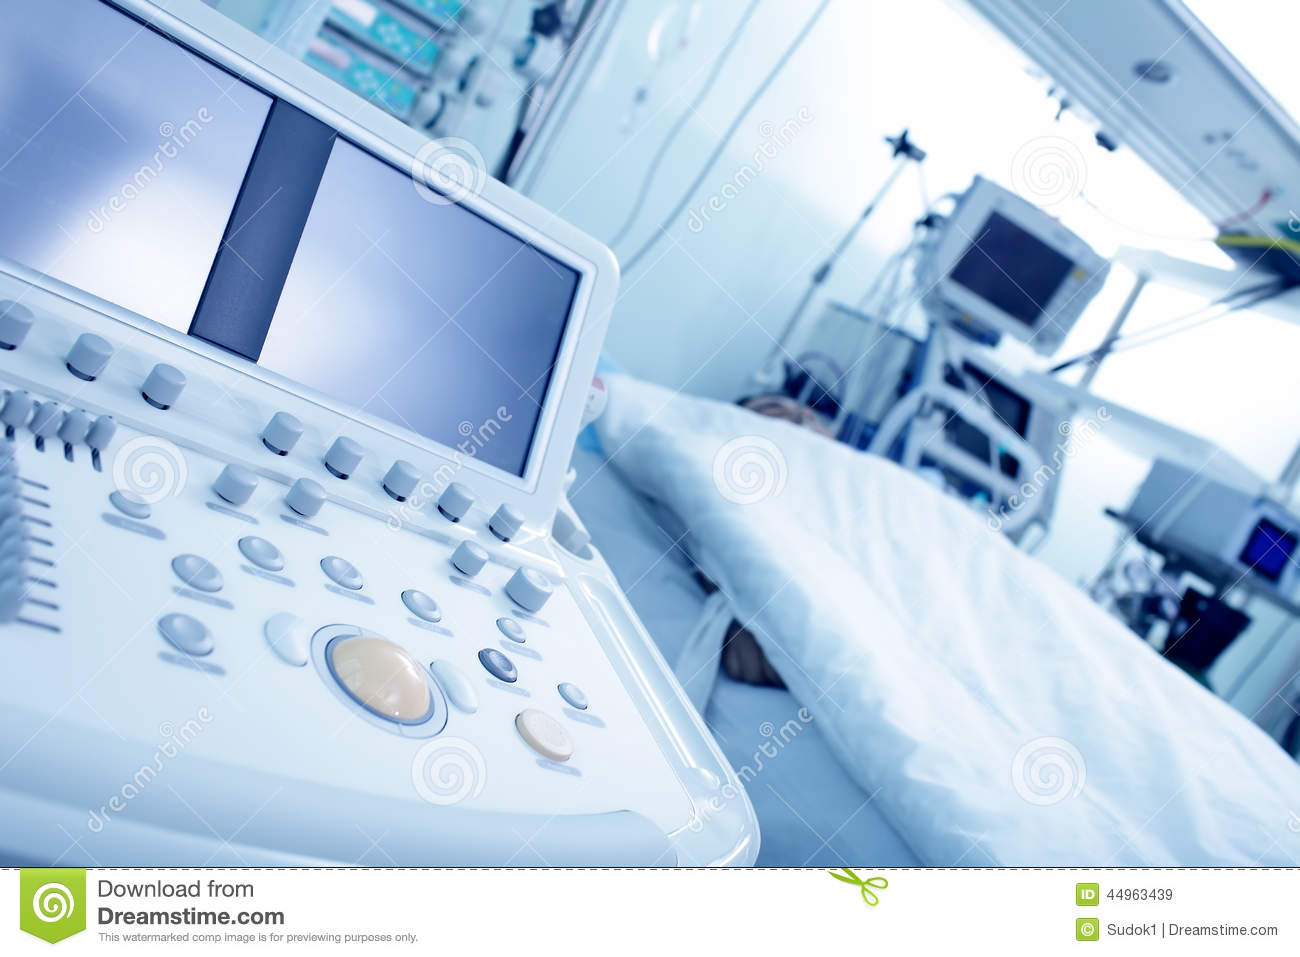 Electronic Medical Instruments : Electronic medical devices stock image of human